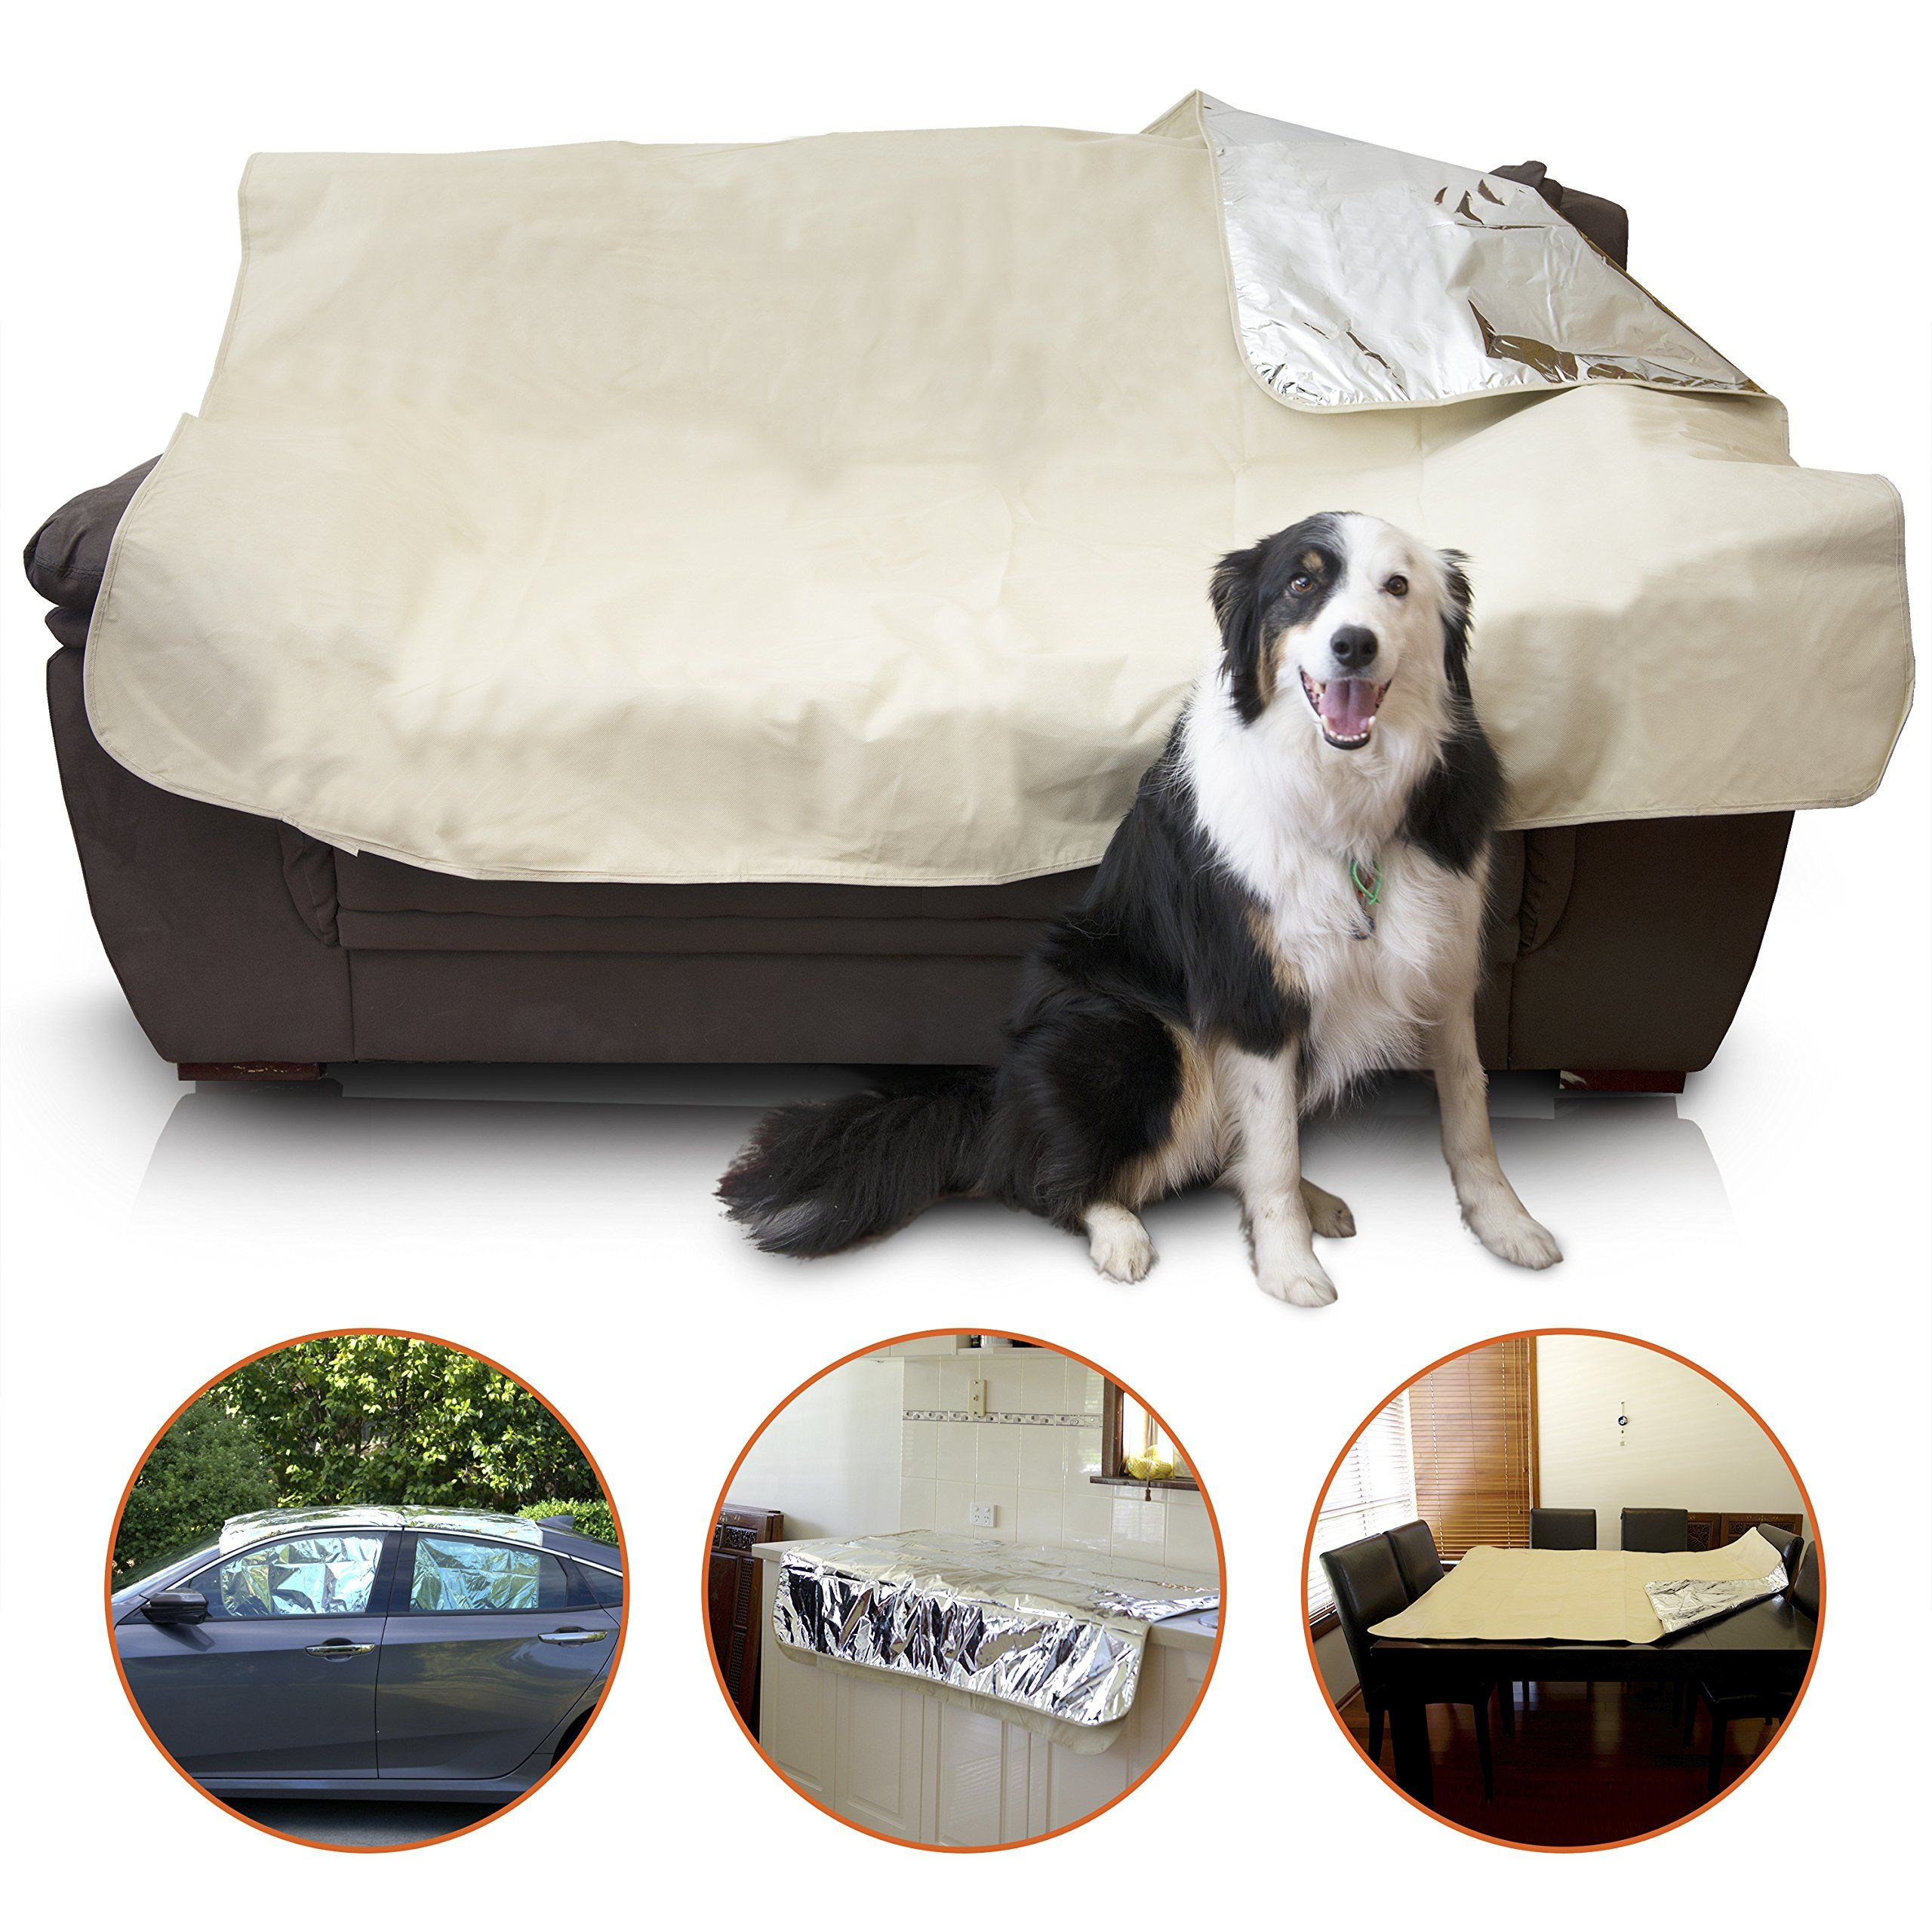 Mosher Pets Keep Dogs And Cats Off The Couch Counter And Other